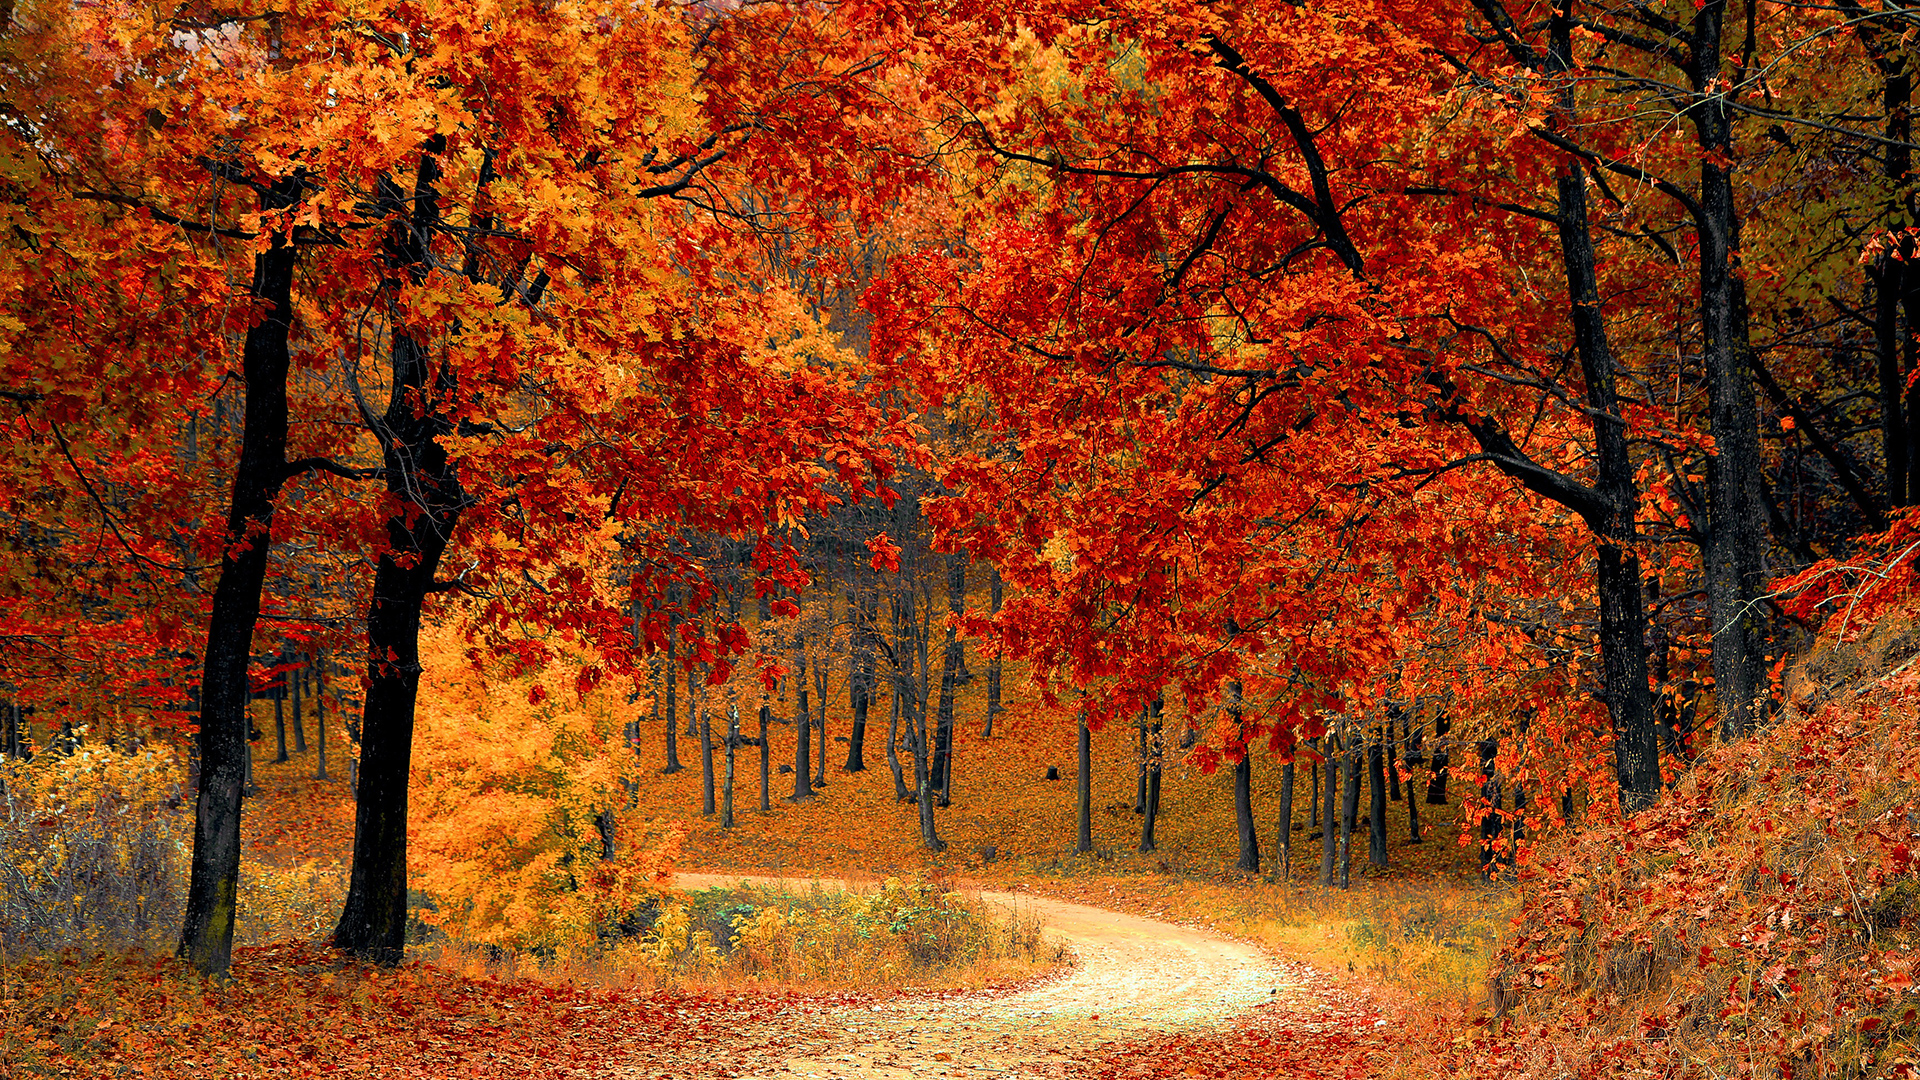 Breathtaking-fiery-forest-in-Fall-season-1920x1080-wallpaper-wp3403500